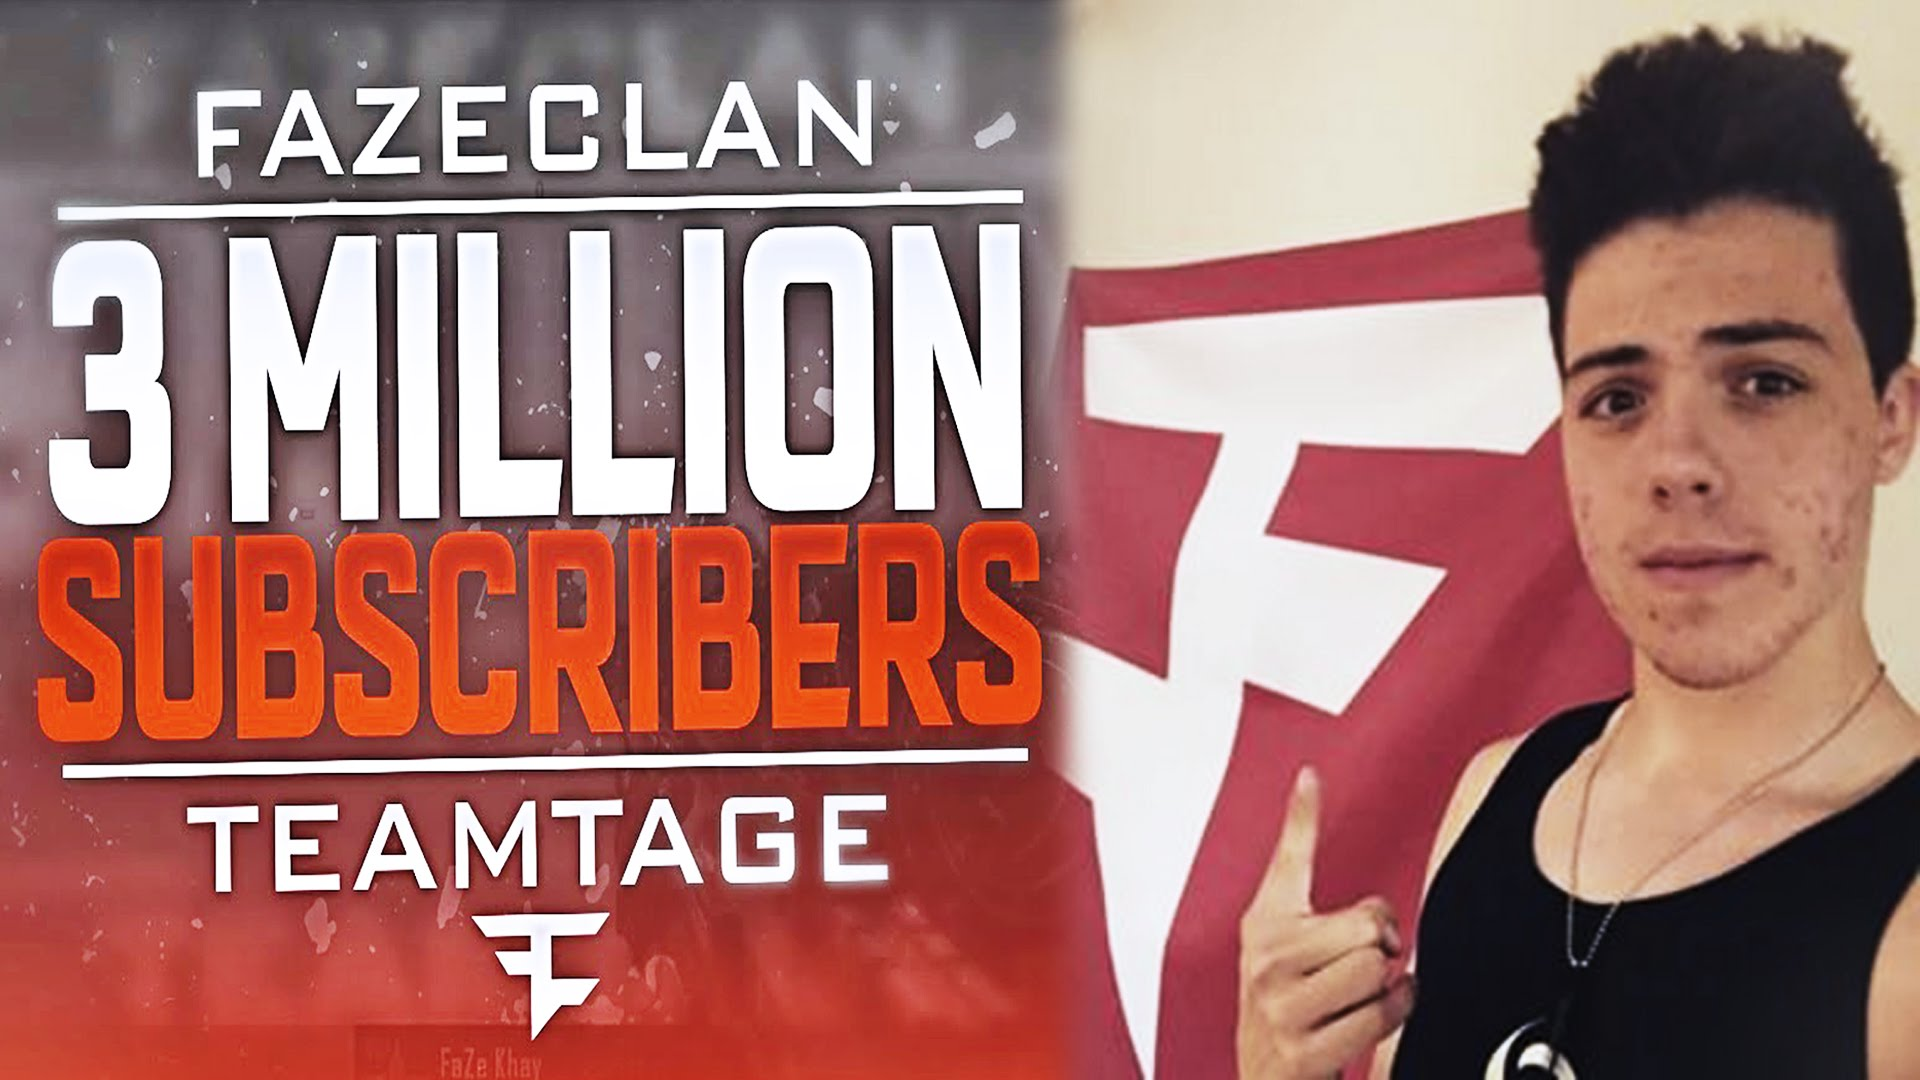 FaZe 3 Million Teamtage THIS WEEK, FaZe Adapt Hacked, #FAZE5